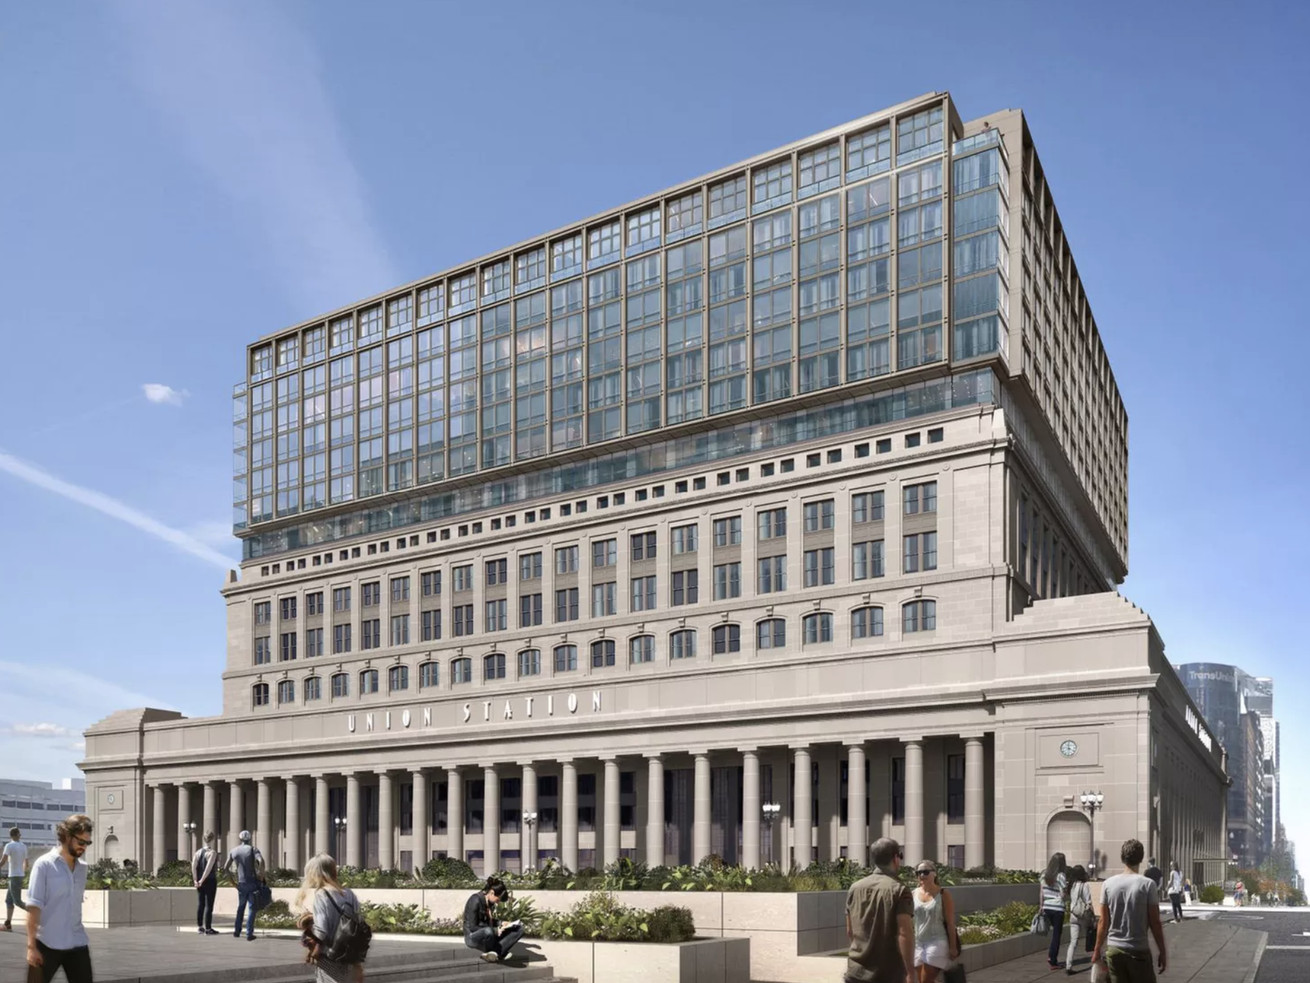 In 2018 developers scrapped plans to build a seven-story apartment addition above Chicago's historic Beaux-Arts Union Station head house.